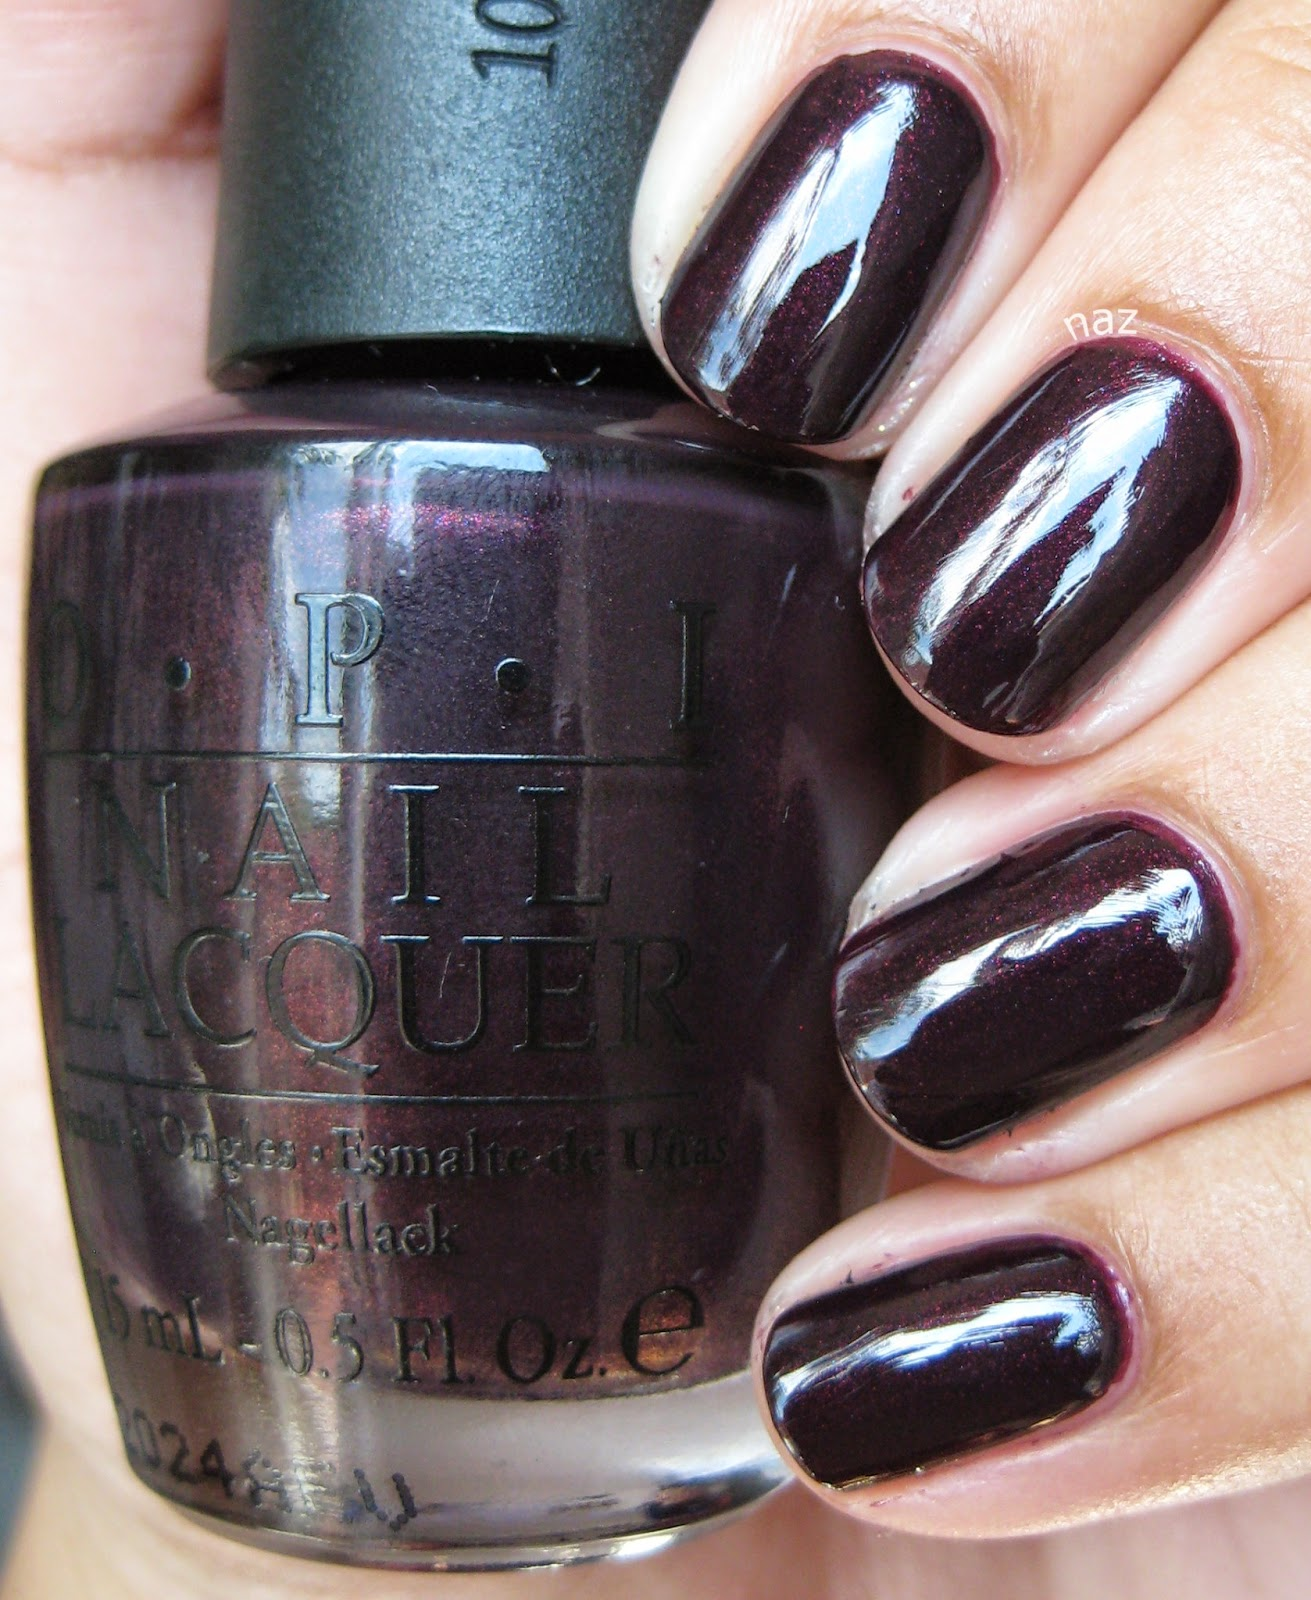 Naz S Nails Opi Black Cherry Chutney